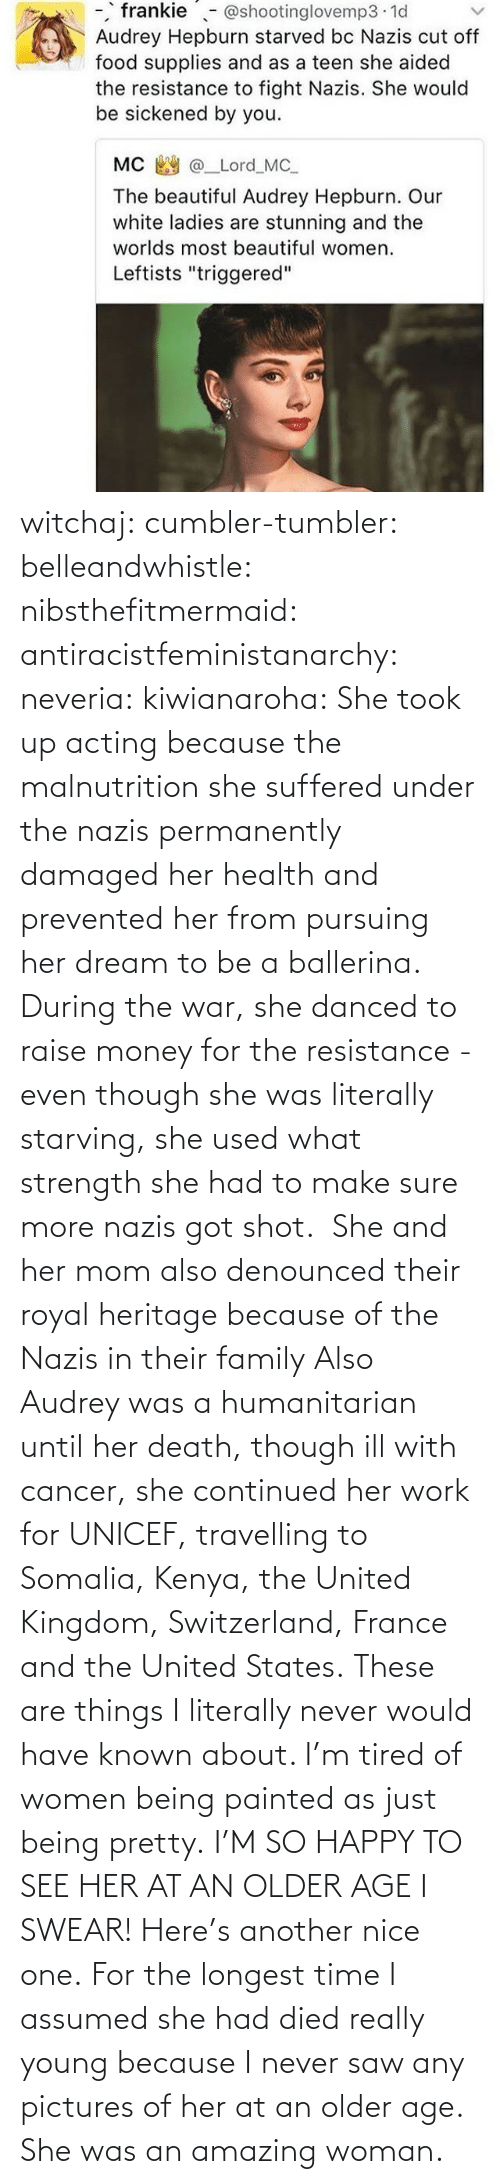 During: witchaj: cumbler-tumbler:  belleandwhistle:  nibsthefitmermaid:  antiracistfeministanarchy:  neveria:  kiwianaroha: She took up acting because the malnutrition she suffered under the nazis permanently damaged her health and prevented her from pursuing her dream to be a ballerina. During the war, she danced to raise money for the resistance - even though she was literally starving, she used what strength she had to make sure more nazis got shot.  She and her mom also denounced their royal heritage because of the Nazis in their family  Also Audrey was a humanitarian until her death, though ill with cancer, she continued her work for UNICEF, travelling to Somalia, Kenya, the United Kingdom, Switzerland, France and the United States.  These are things I literally never would have known about. I'm tired of women being painted as just being pretty.  I'M SO HAPPY TO SEE HER AT AN OLDER AGE I SWEAR!  Here's another nice one.   For the longest time I assumed she had died really young because I never saw any pictures of her at an older age.  She was an amazing woman.